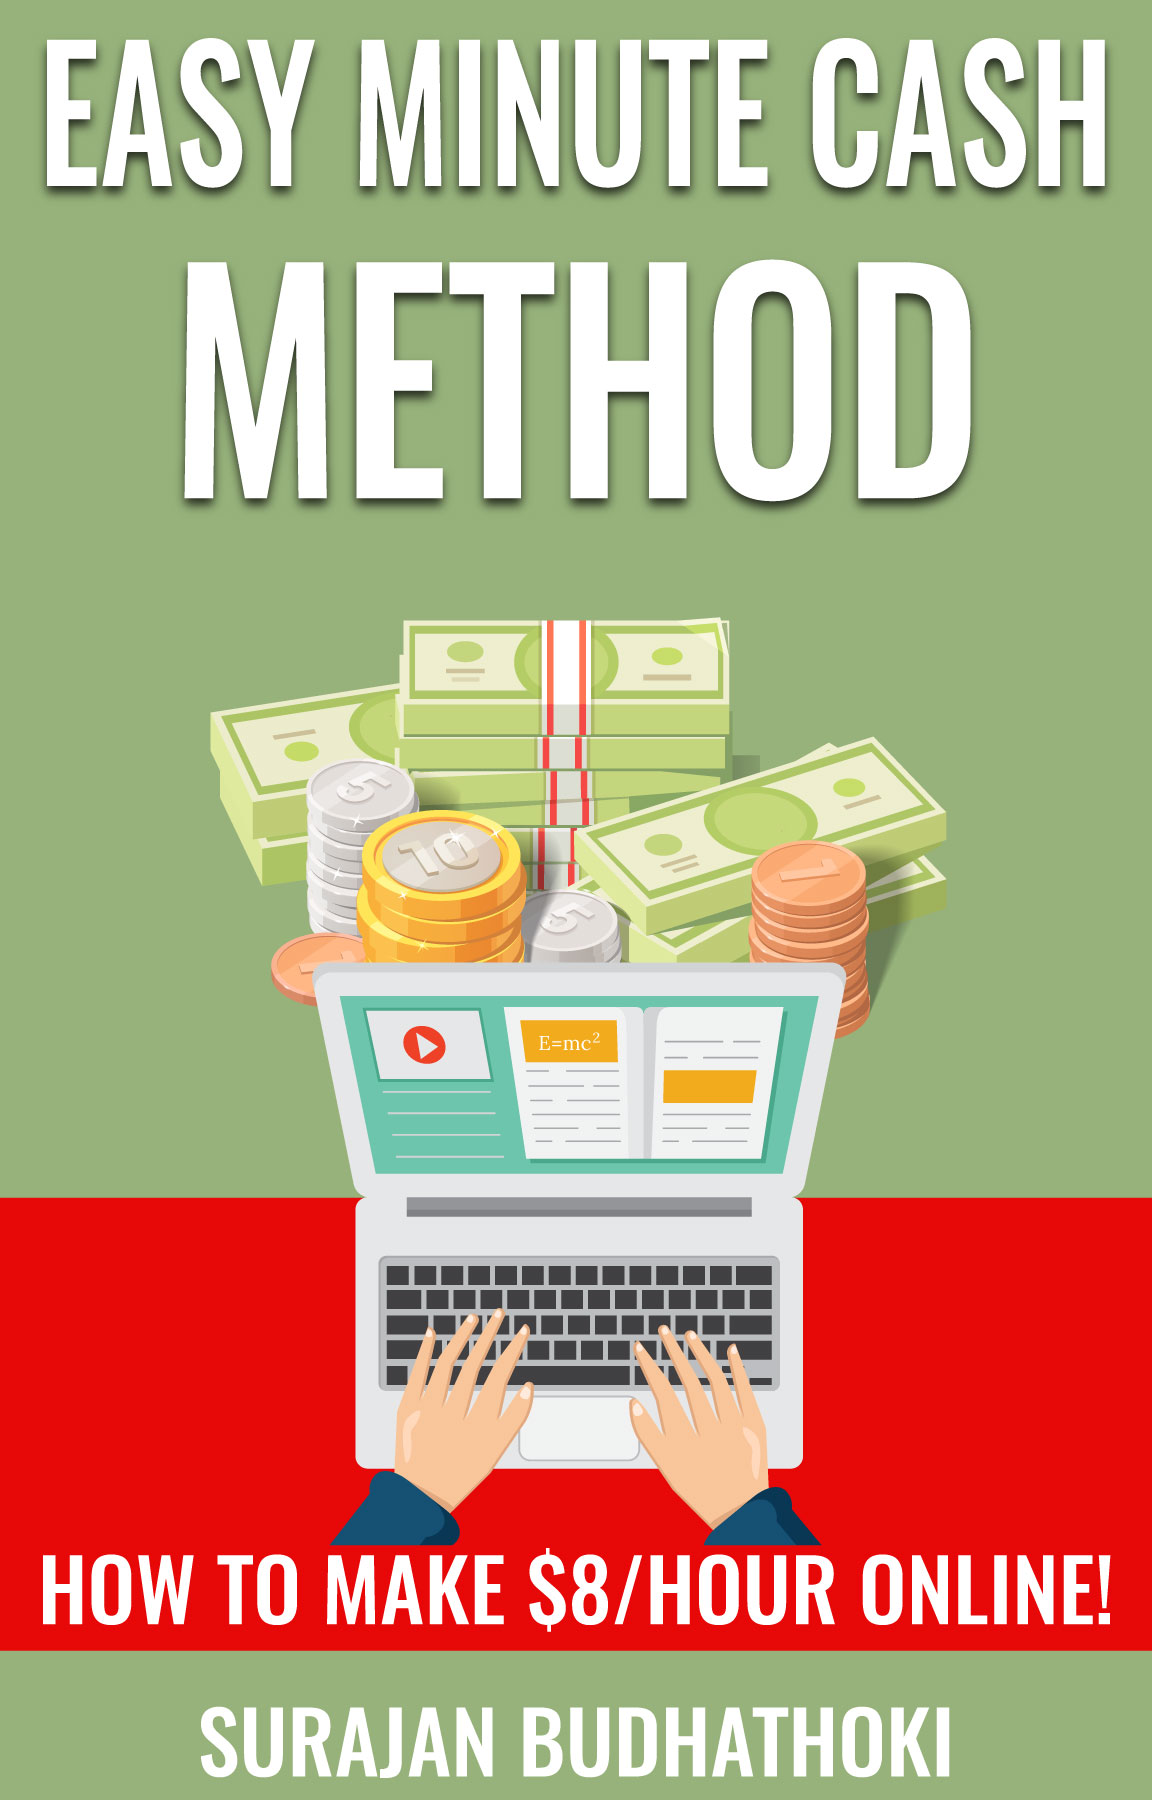 Easy Minute Cash Method